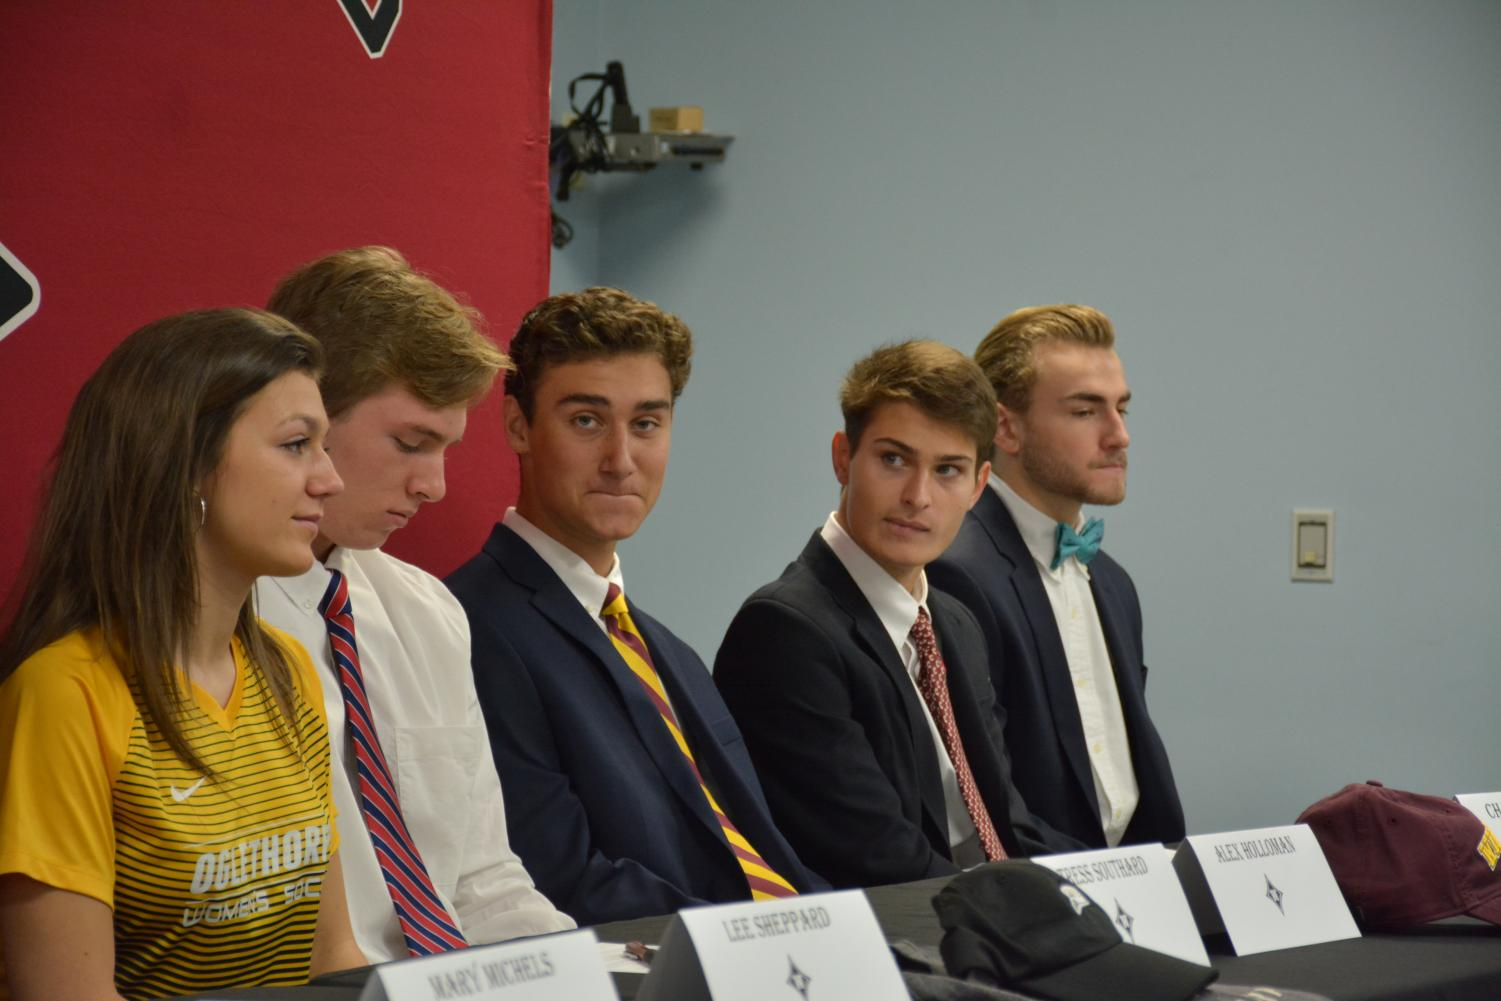 %28Left+to+right%29+Tress+Southard%2C+Alex+Holloman%2C+Carter+Jeffries%2C+Charlie+Marino%2C+and+Connor+McCarthy+look+to+the+side+after+signing.